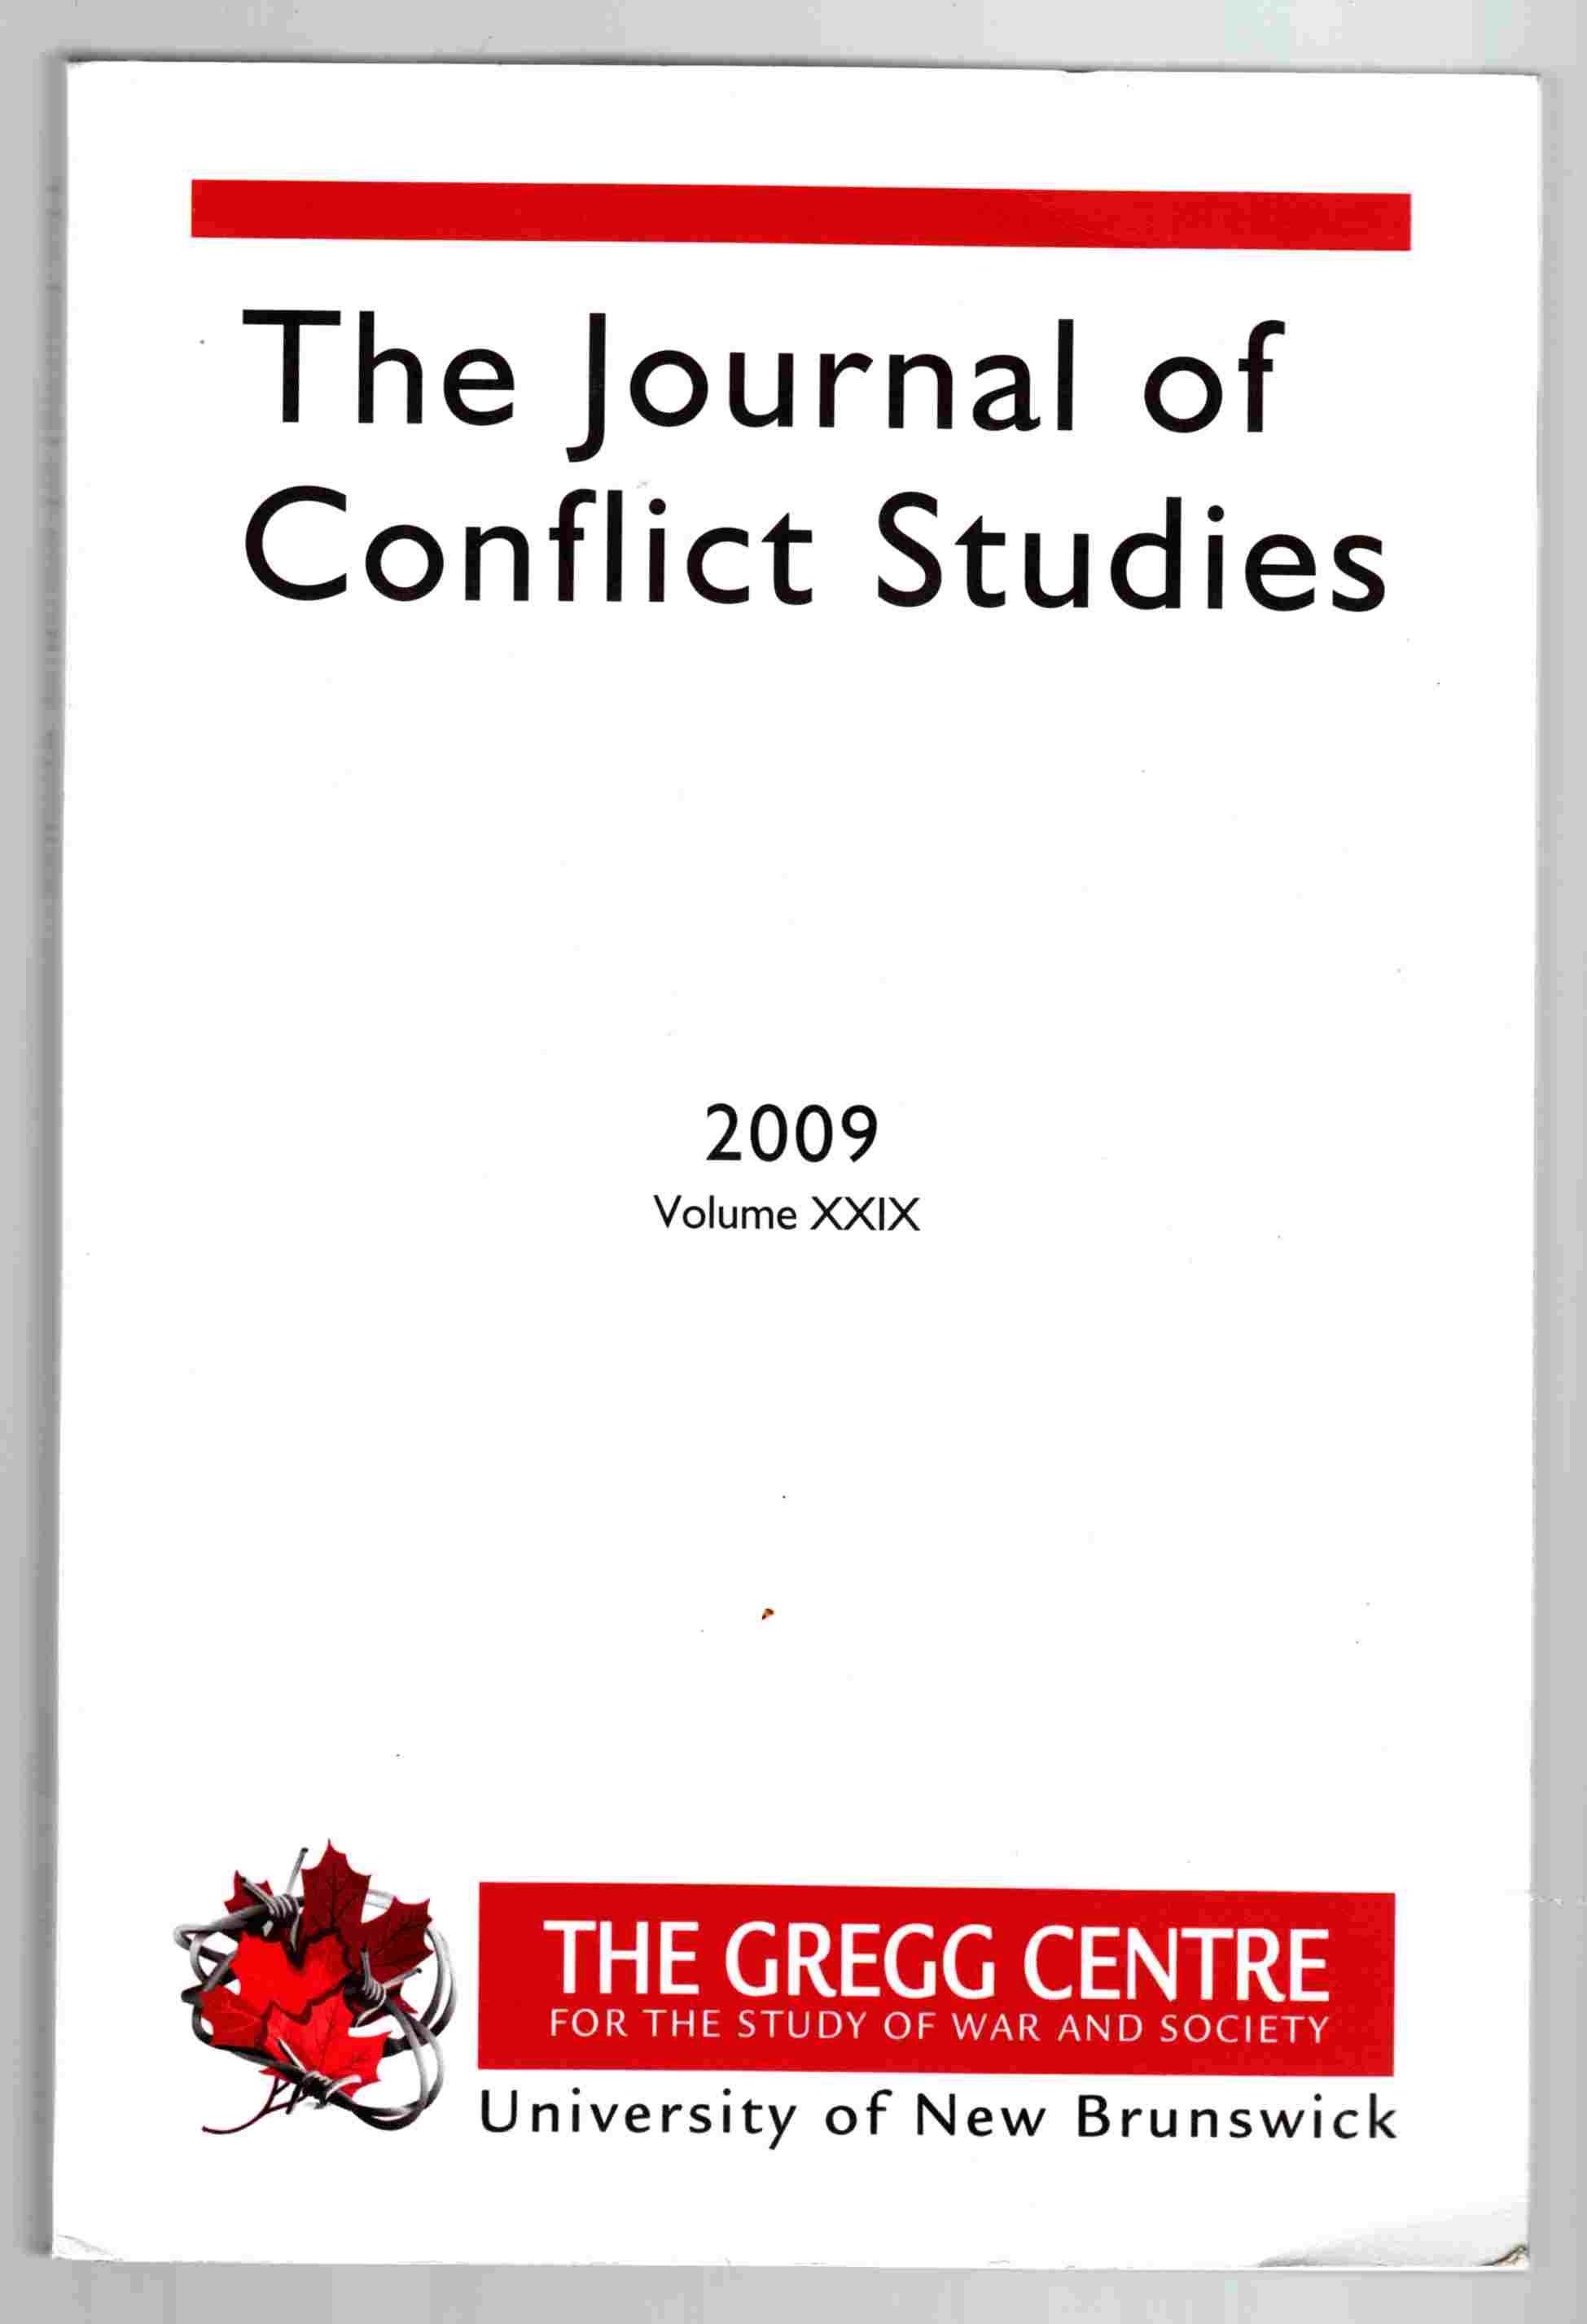 Image for The Journal of Conflict Studies 2009 Volume XXIX